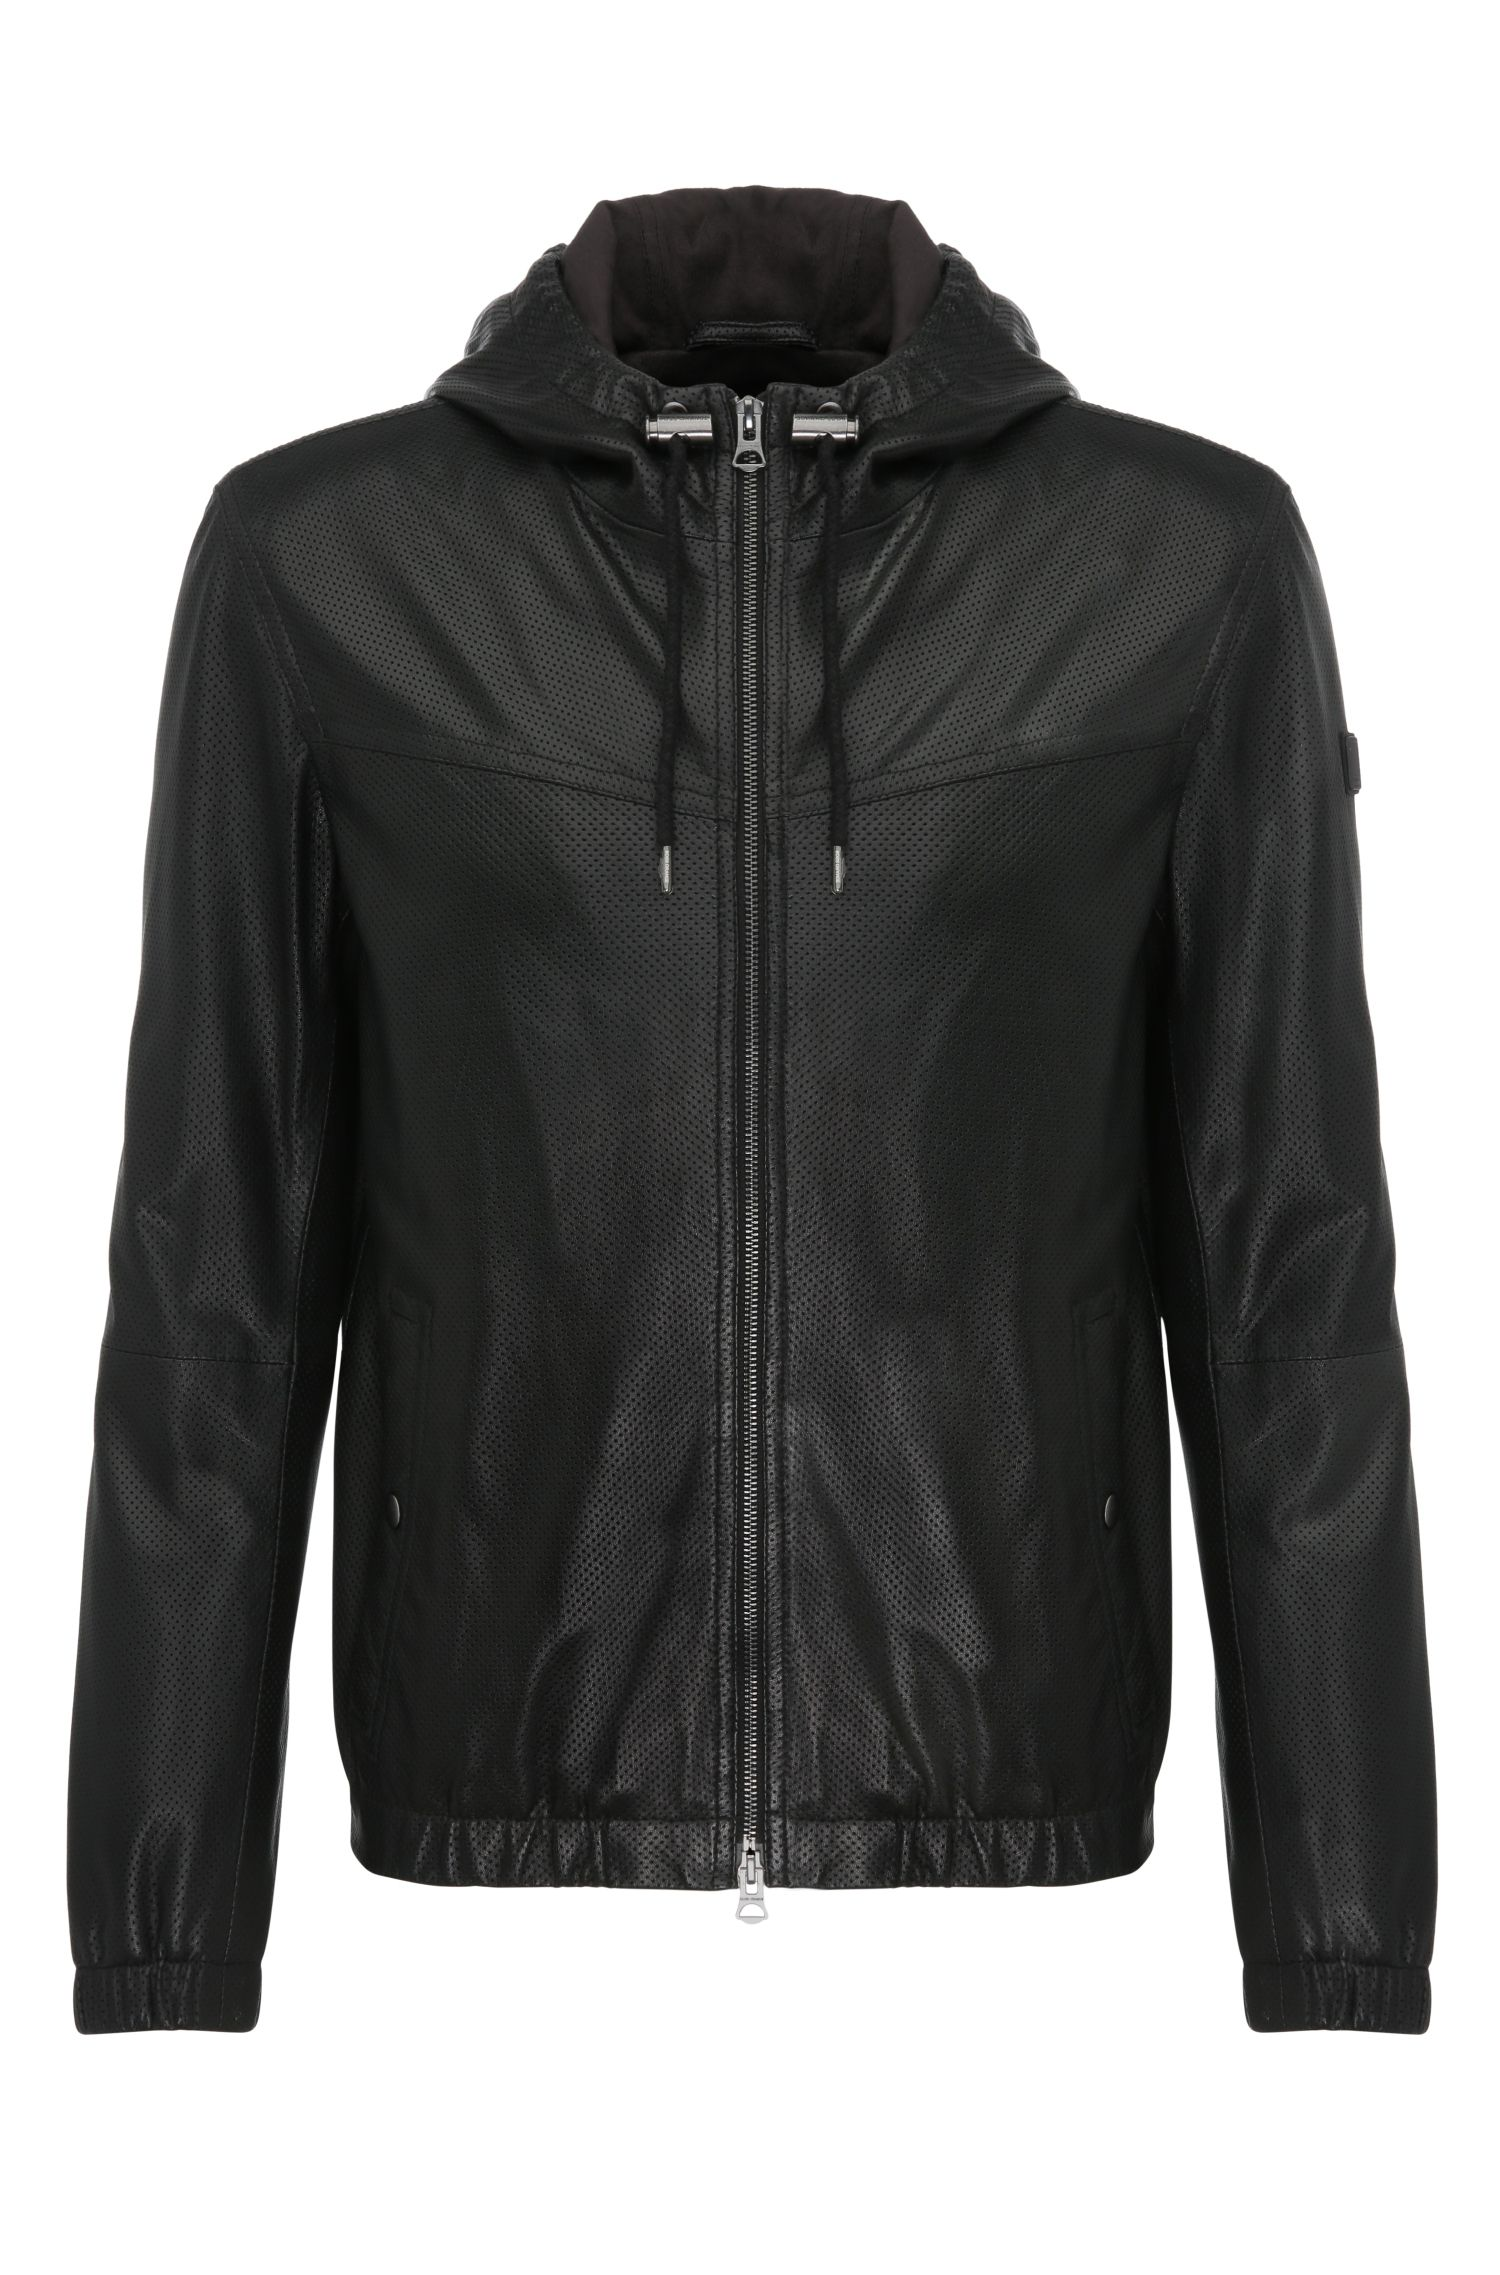 Lambskin Perforated Hooded Blouson Jacket | Jainee